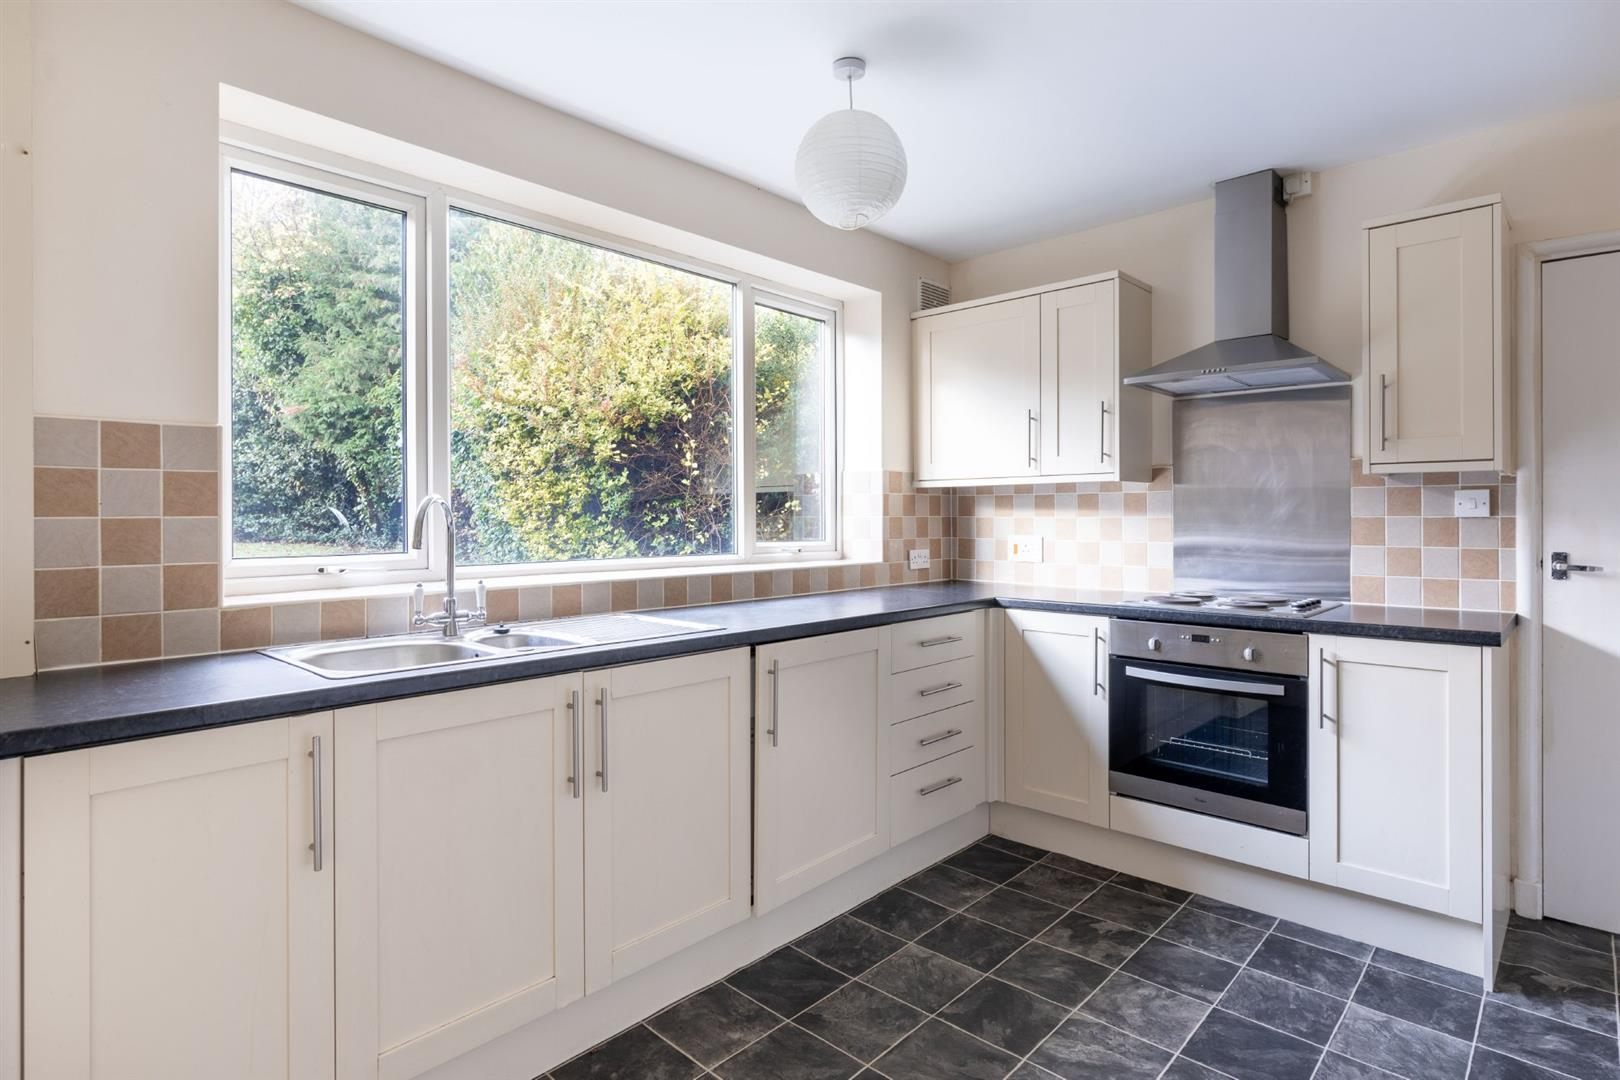 4 bed semi-detached house to rent in Gosforth, NE3 5TA  - Property Image 4